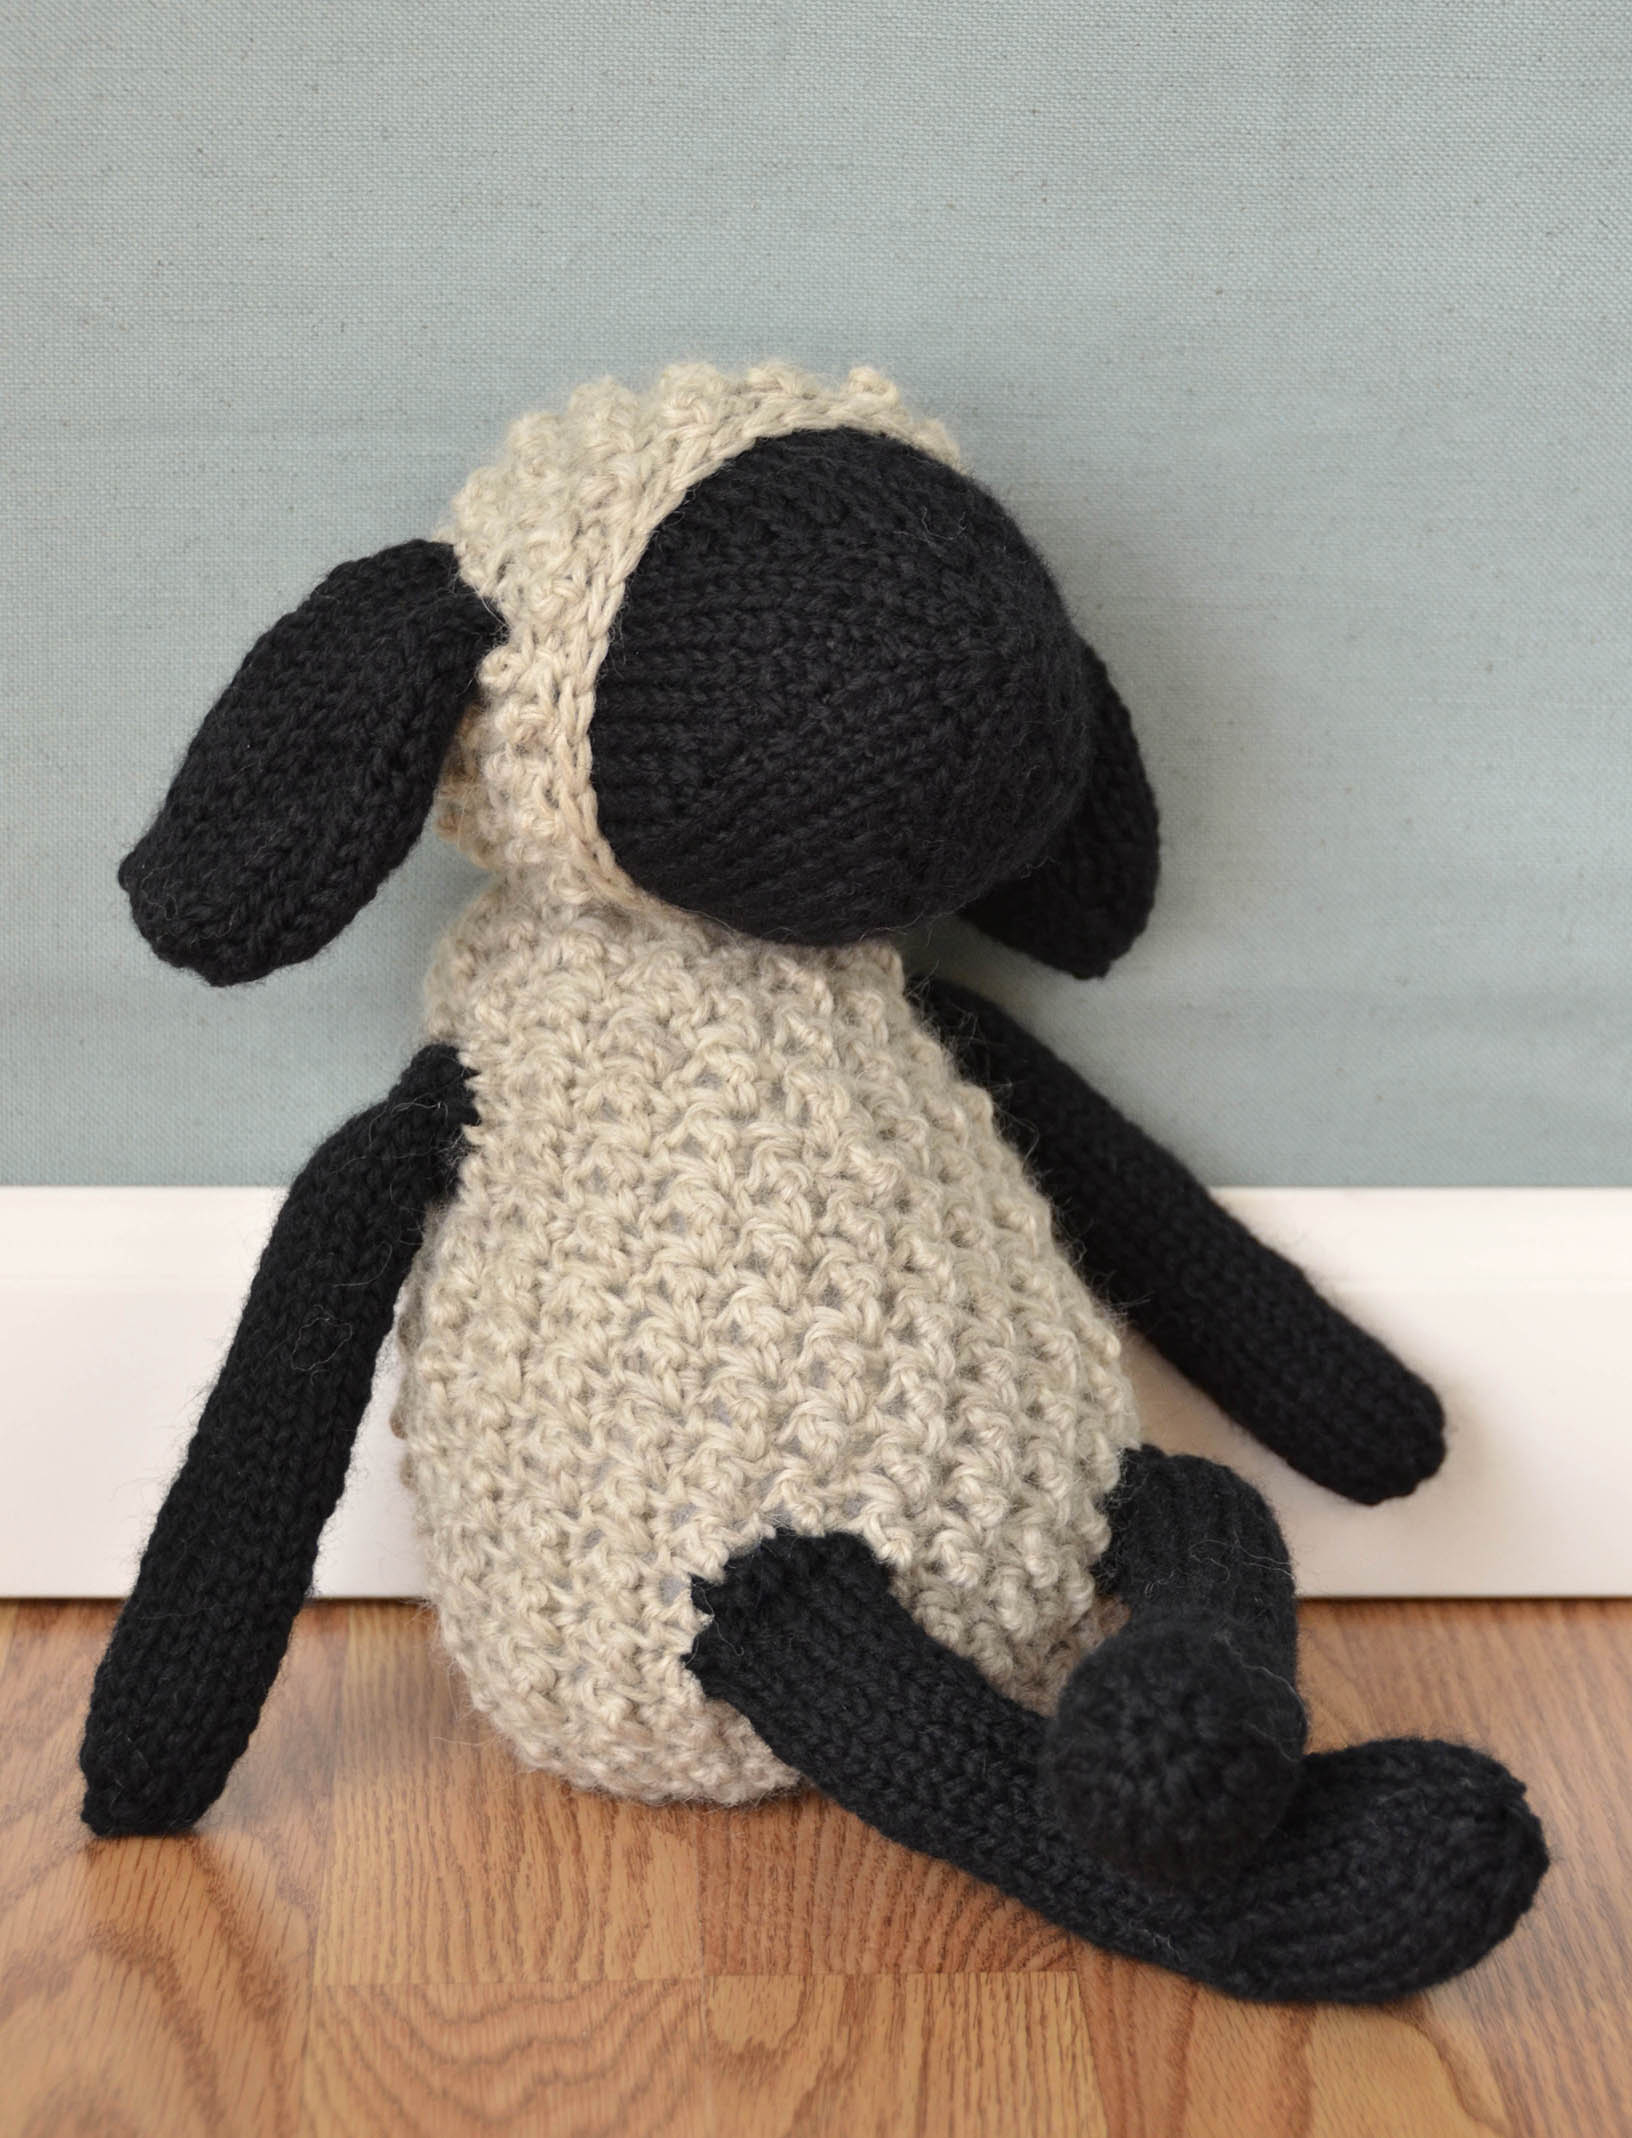 The Sweetest Crochet Lamb Patterns for Free Free Pattern Friday Sheldon Sheep Friends Universal Yarn